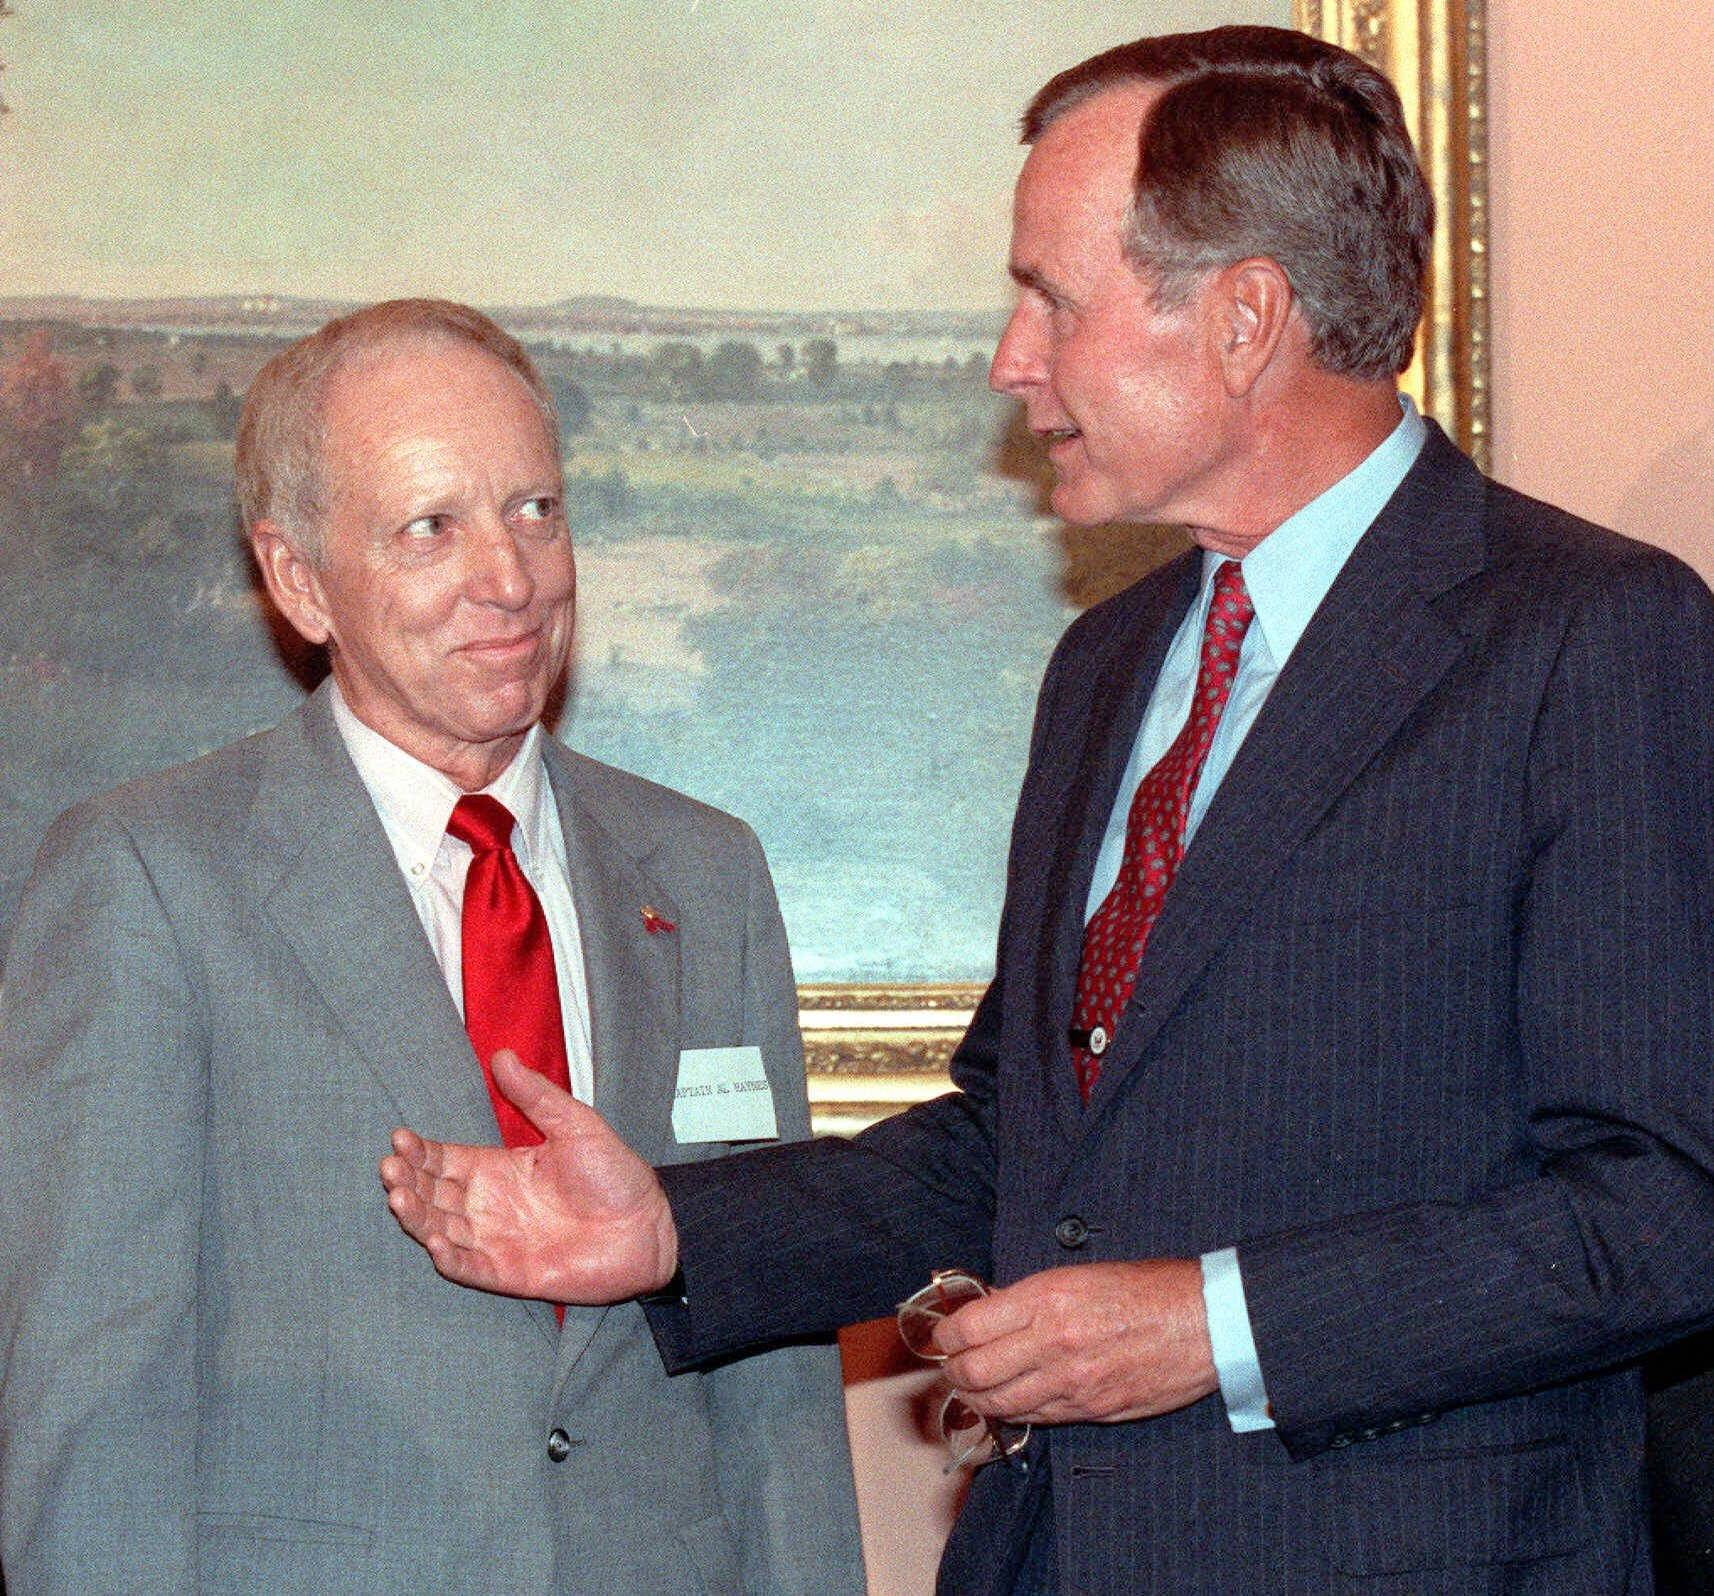 President George Bush, right, meets with Capt. Alfred Haynes at the White House in this Sept 7, 1989 photo. Haynes guided the disabled United Airlines flight 232 aircraft in Sioux City, Iowa.   He and co-pilots Dudley Dvorak, Bill Records and Dennis Fitch, crushed in the rubble, hung upside down for 40 minutes before rescue crews discovered them.